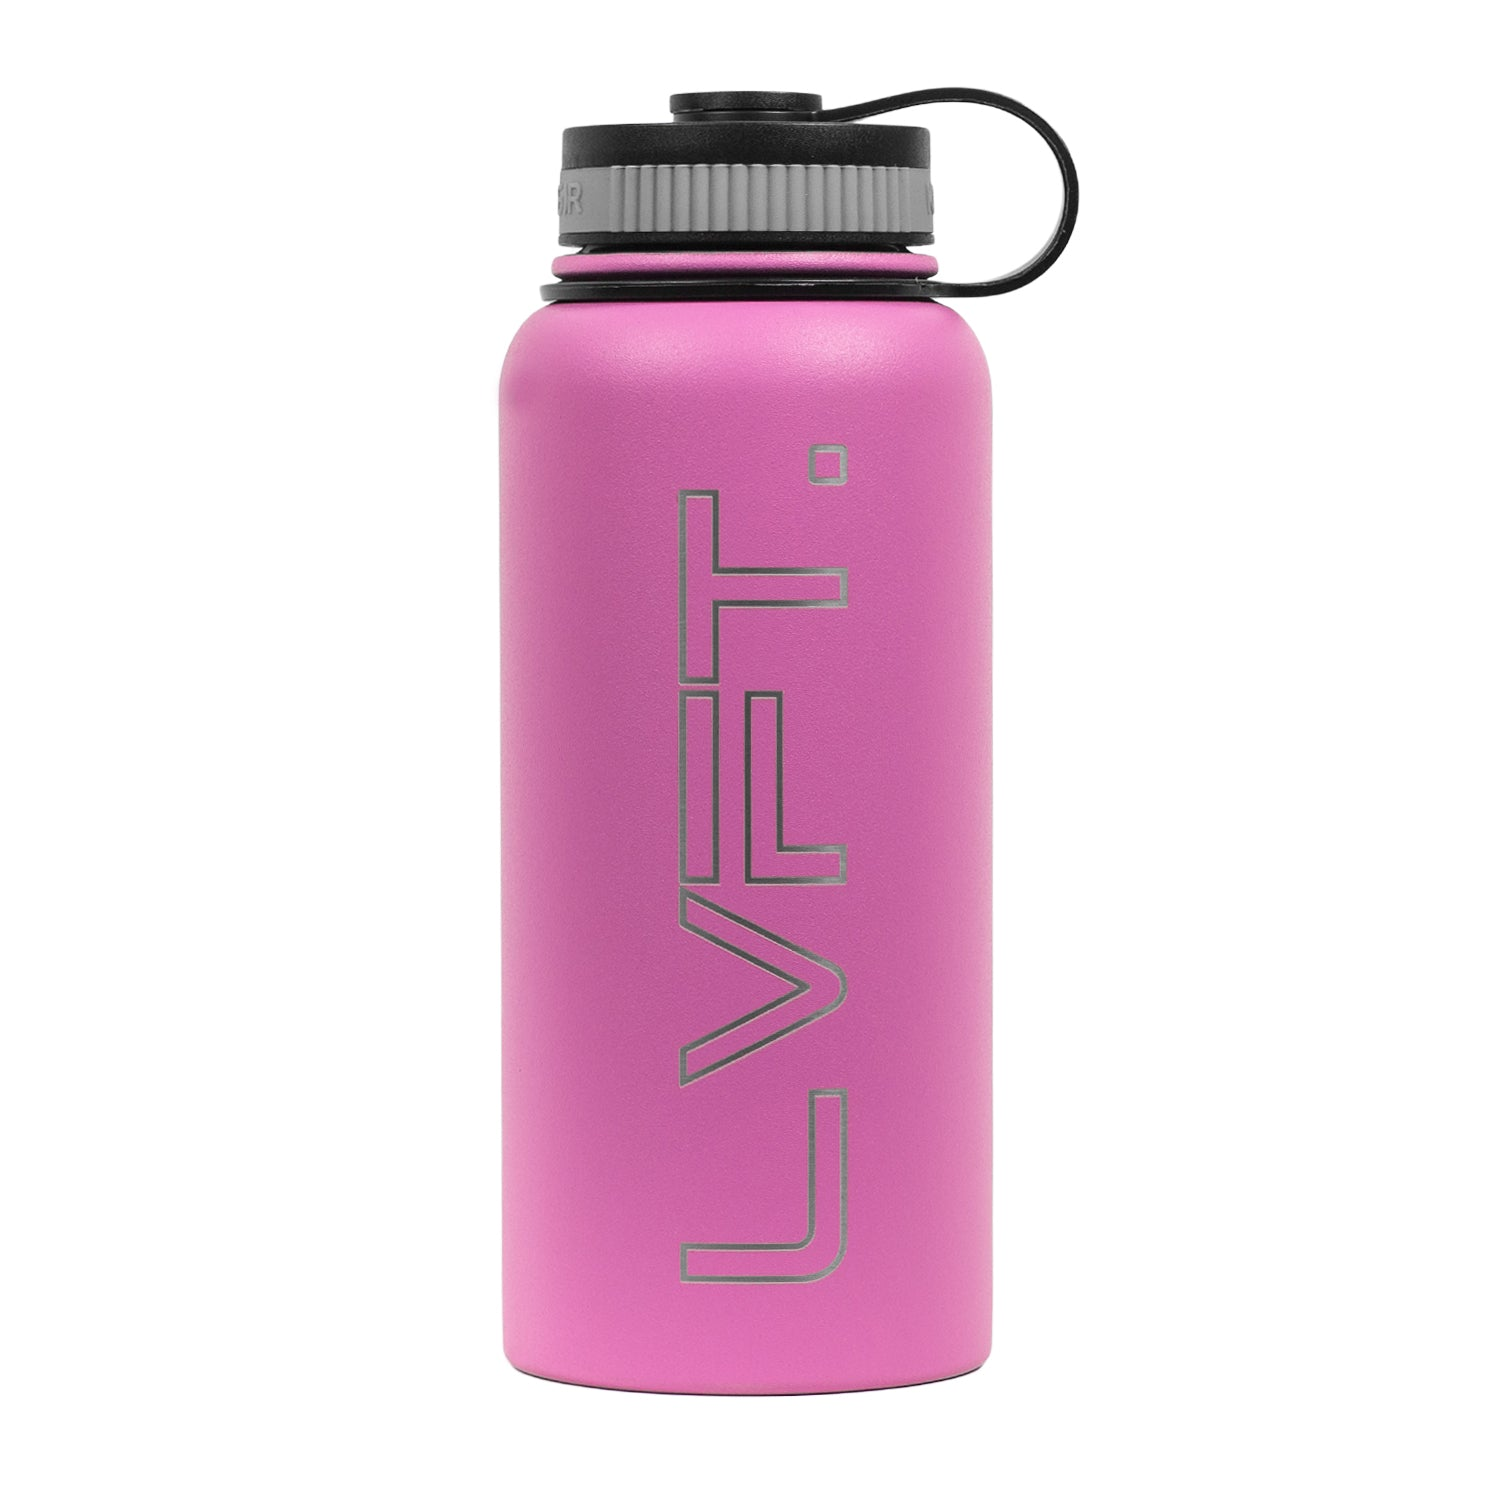 LVFT Stainless Steel Bottle - Pink